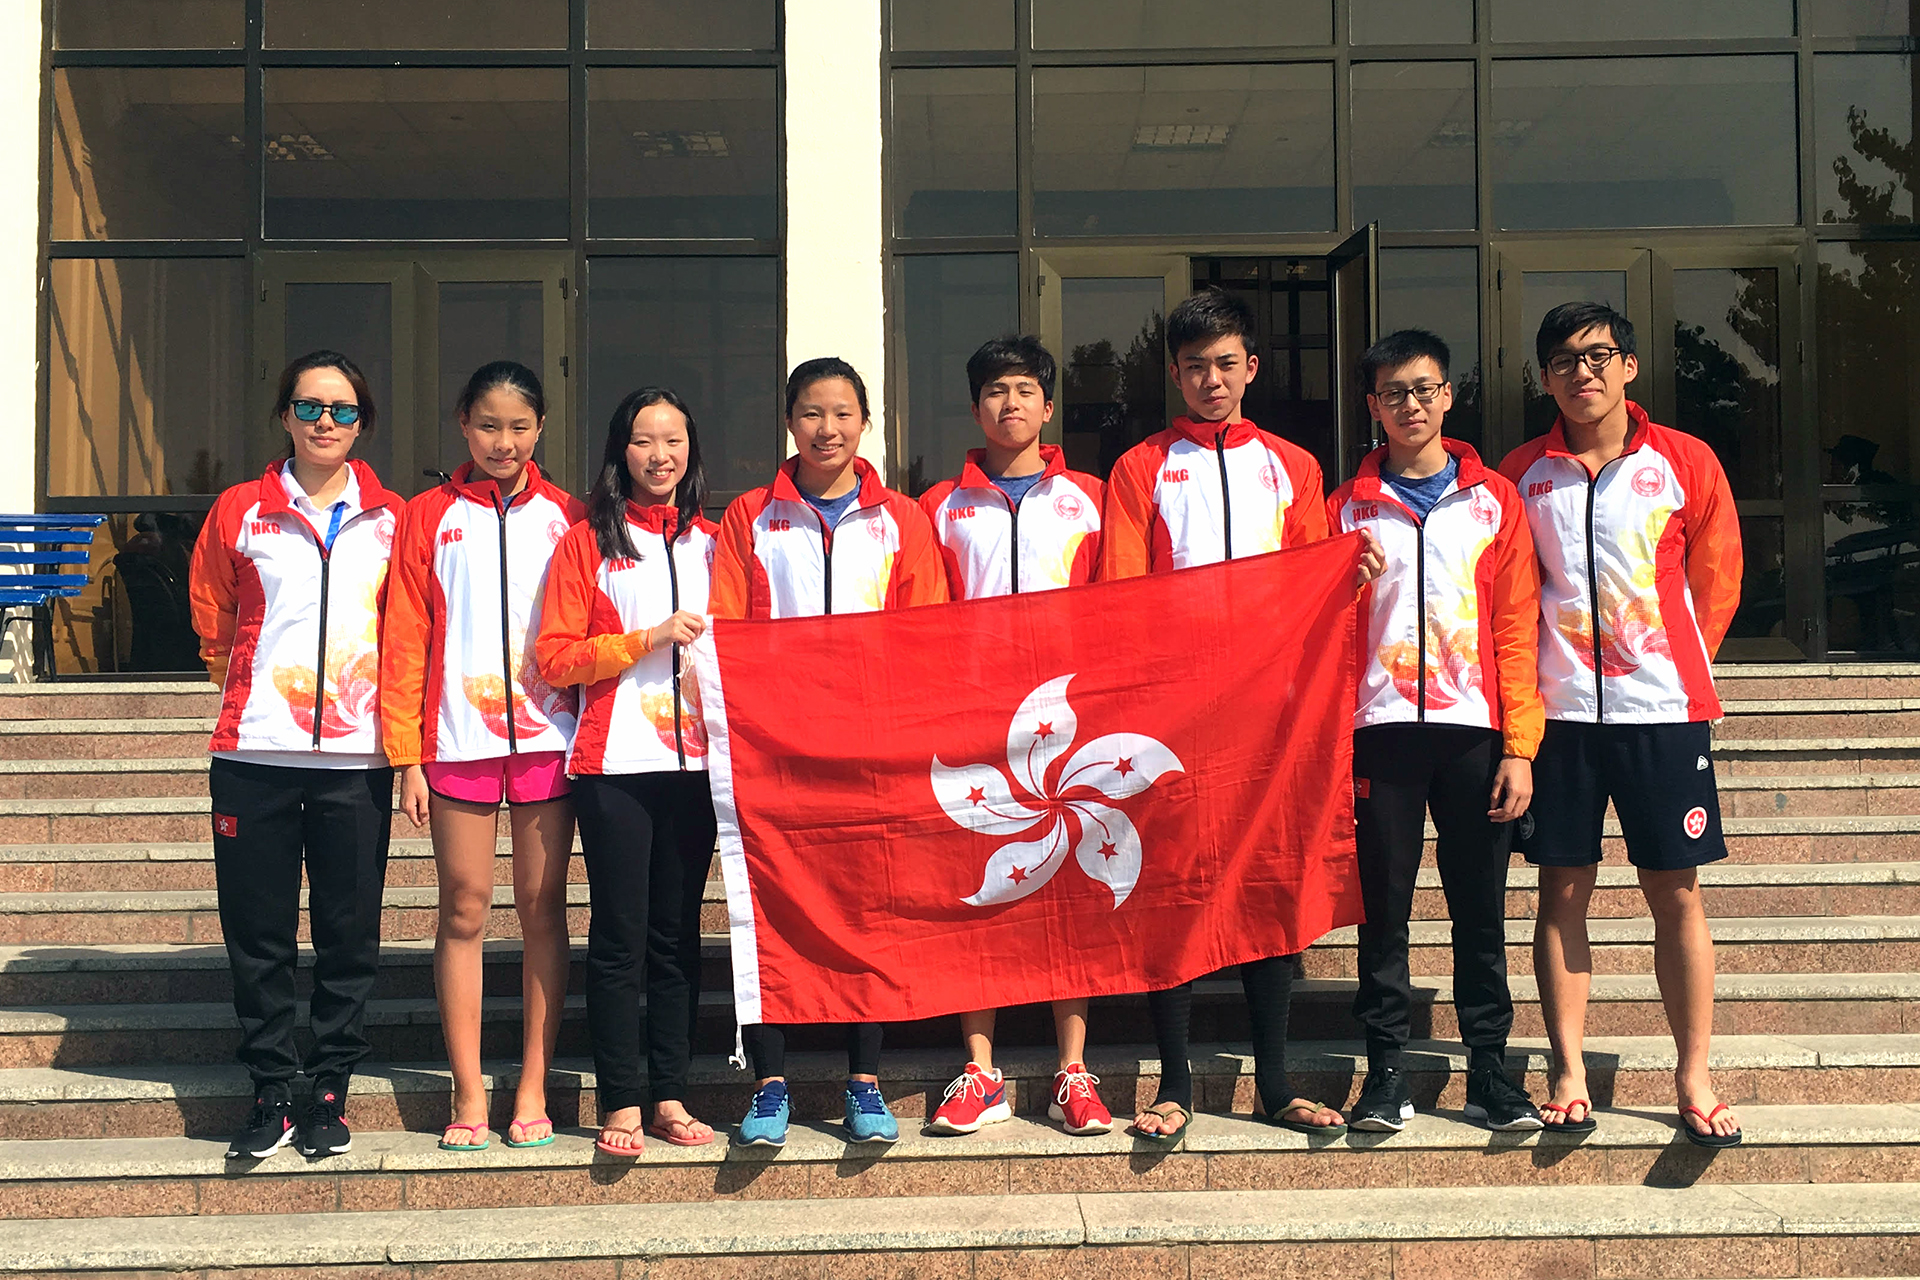 Win Tin Swimming Club - 9th AAG 1